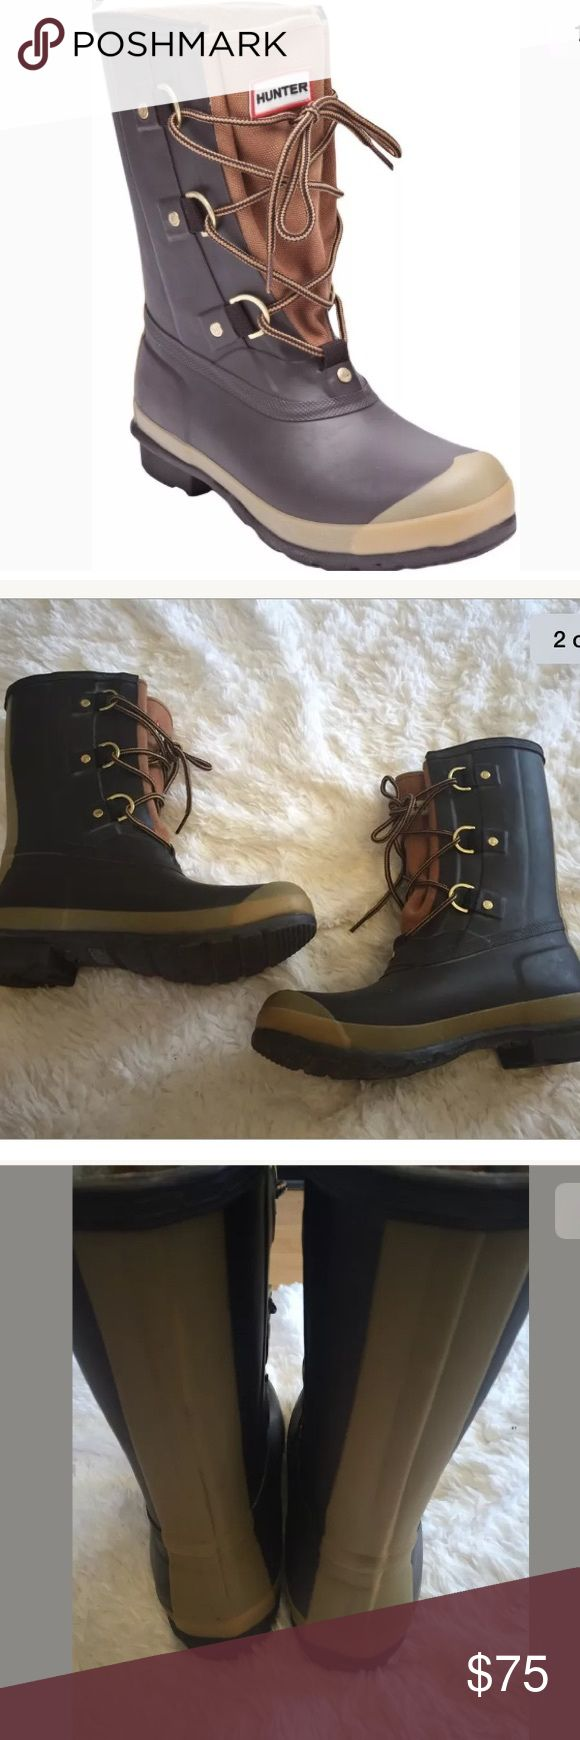 Hunter boots Sascha rain boots  8 men's 9 women's Hunter boots  Sascha style  Women's size 9/ men's size 8 ( runs a little big)  Brown with beige  Lace up  In very good condition Hunter Boots Shoes Rain & Snow Boots